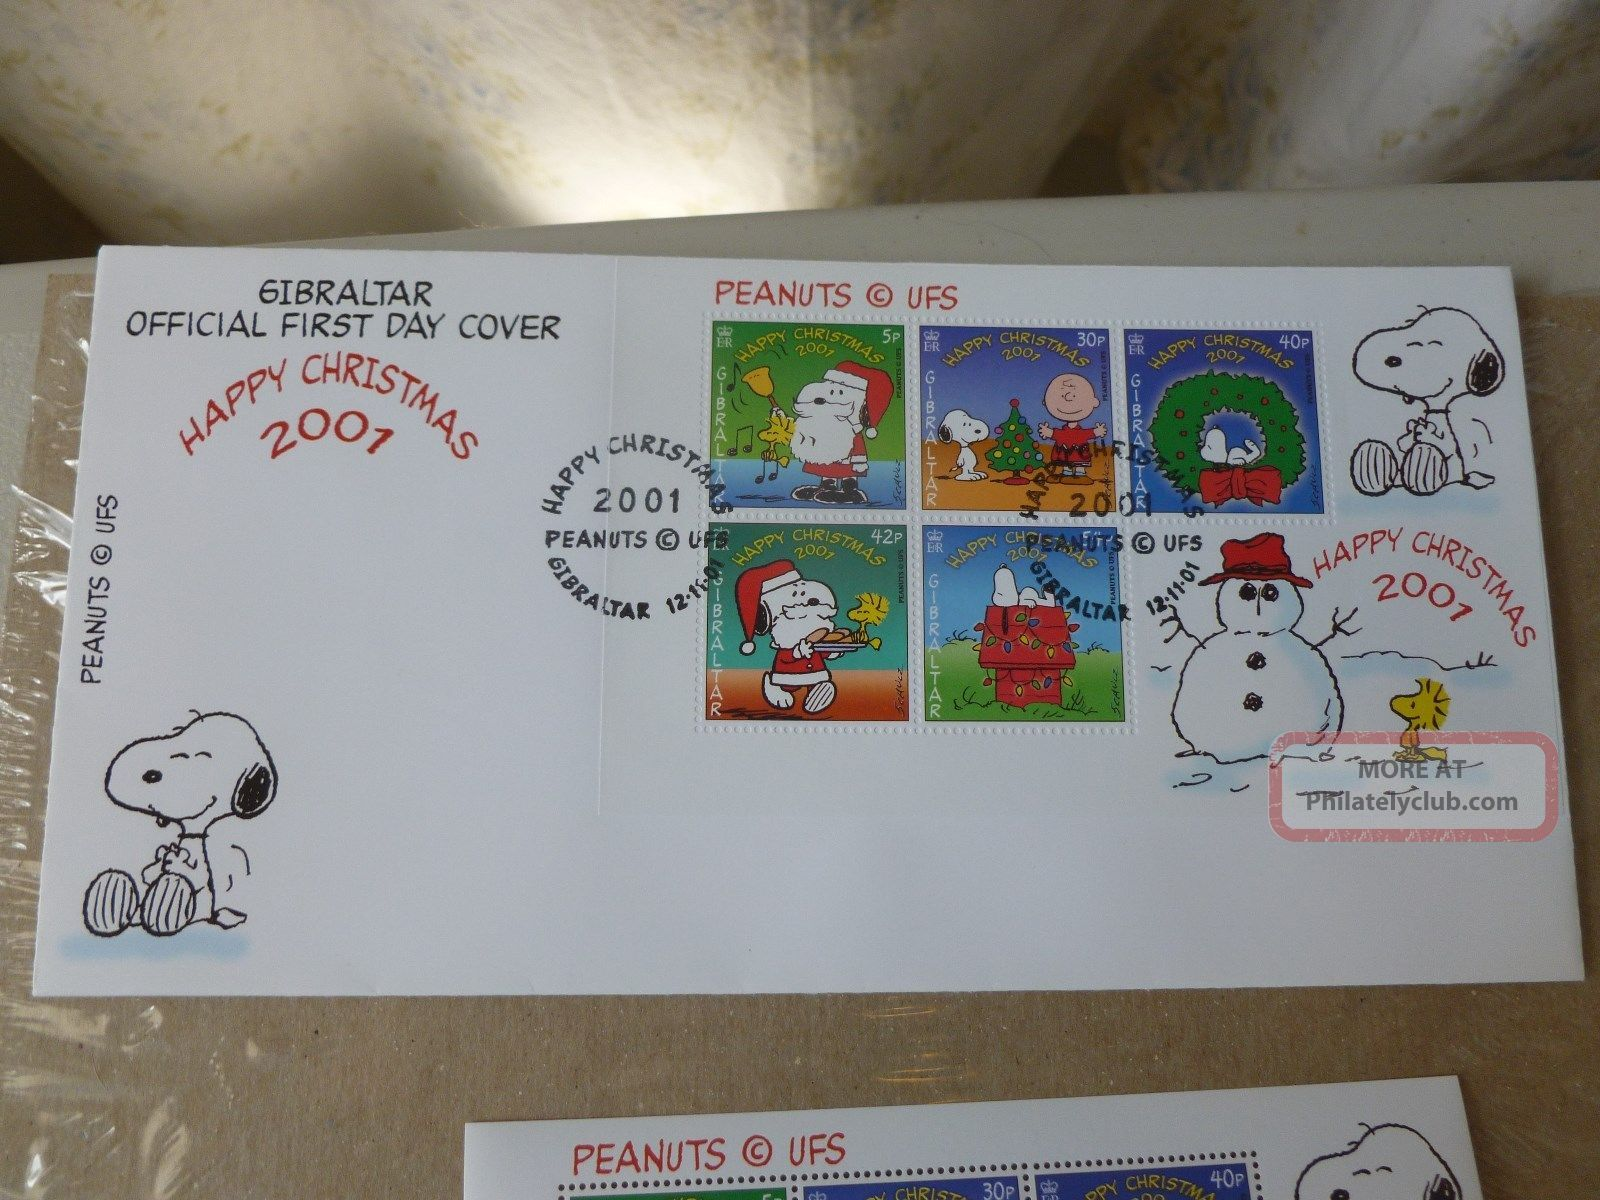 Peanuts 1st Day Cover Gibraltar Happy Xmas Fleetwood 2001&6 Gibraltar Stamp Rare Worldwide photo